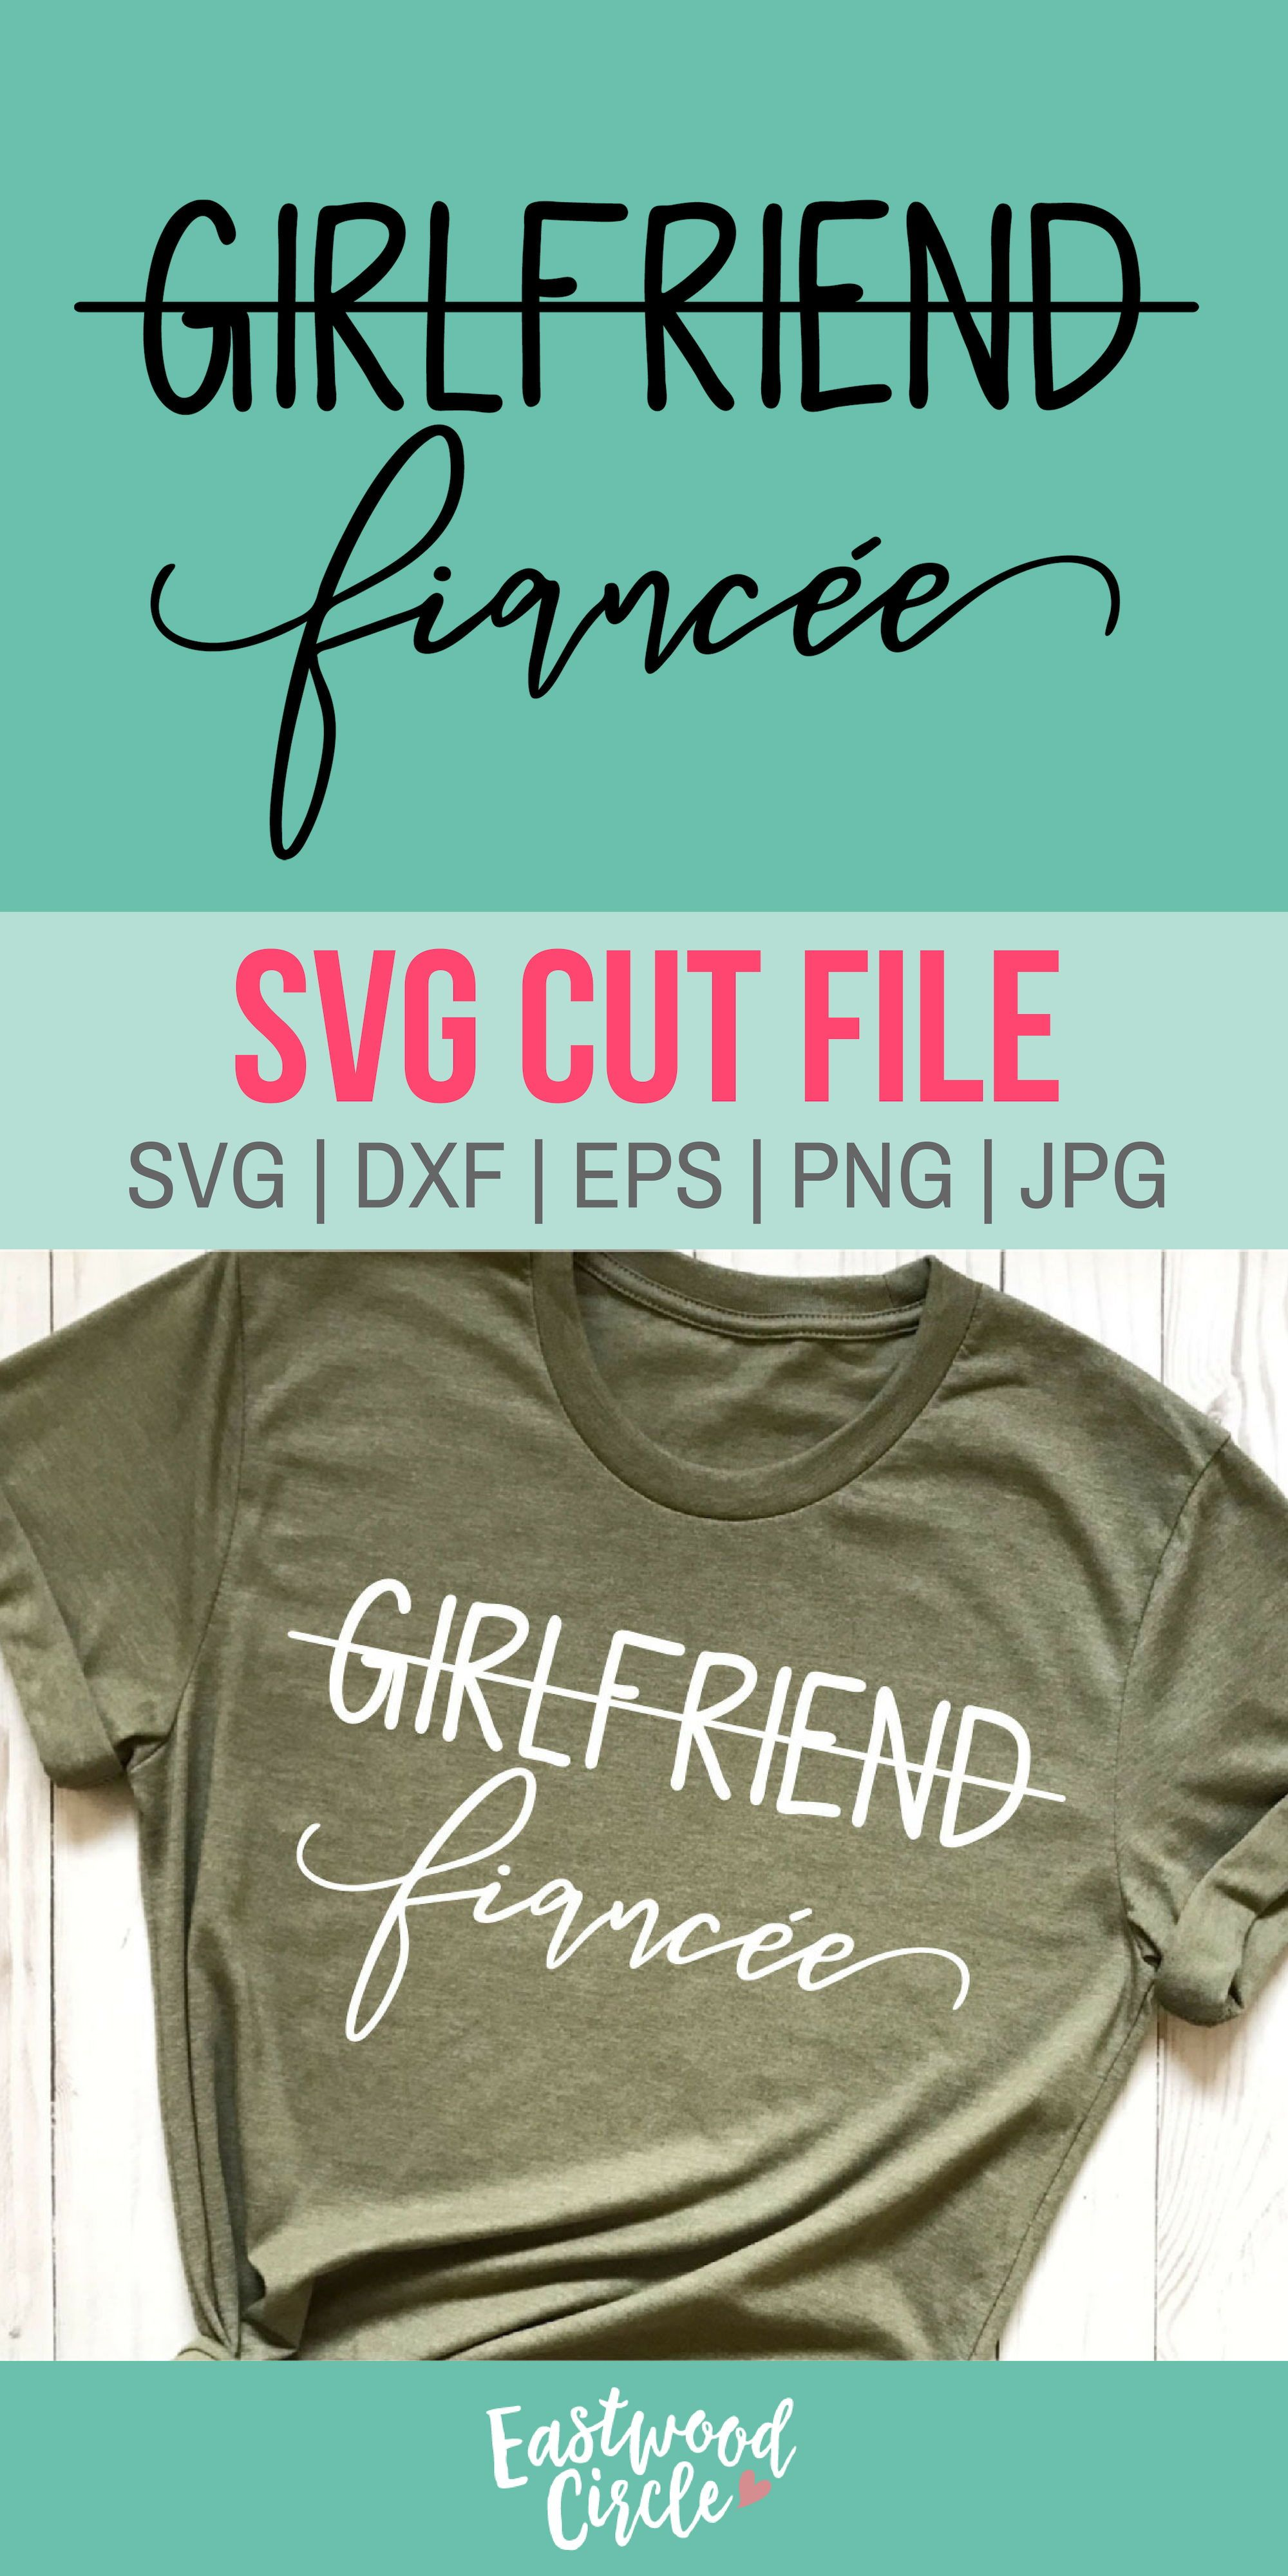 This Svg File Works Great With The Cricut And Silhouette Cameo For Crafters To Make Diy Projects Such As Shirts Cricut Projects Vinyl Diy Cricut Cricut Htv